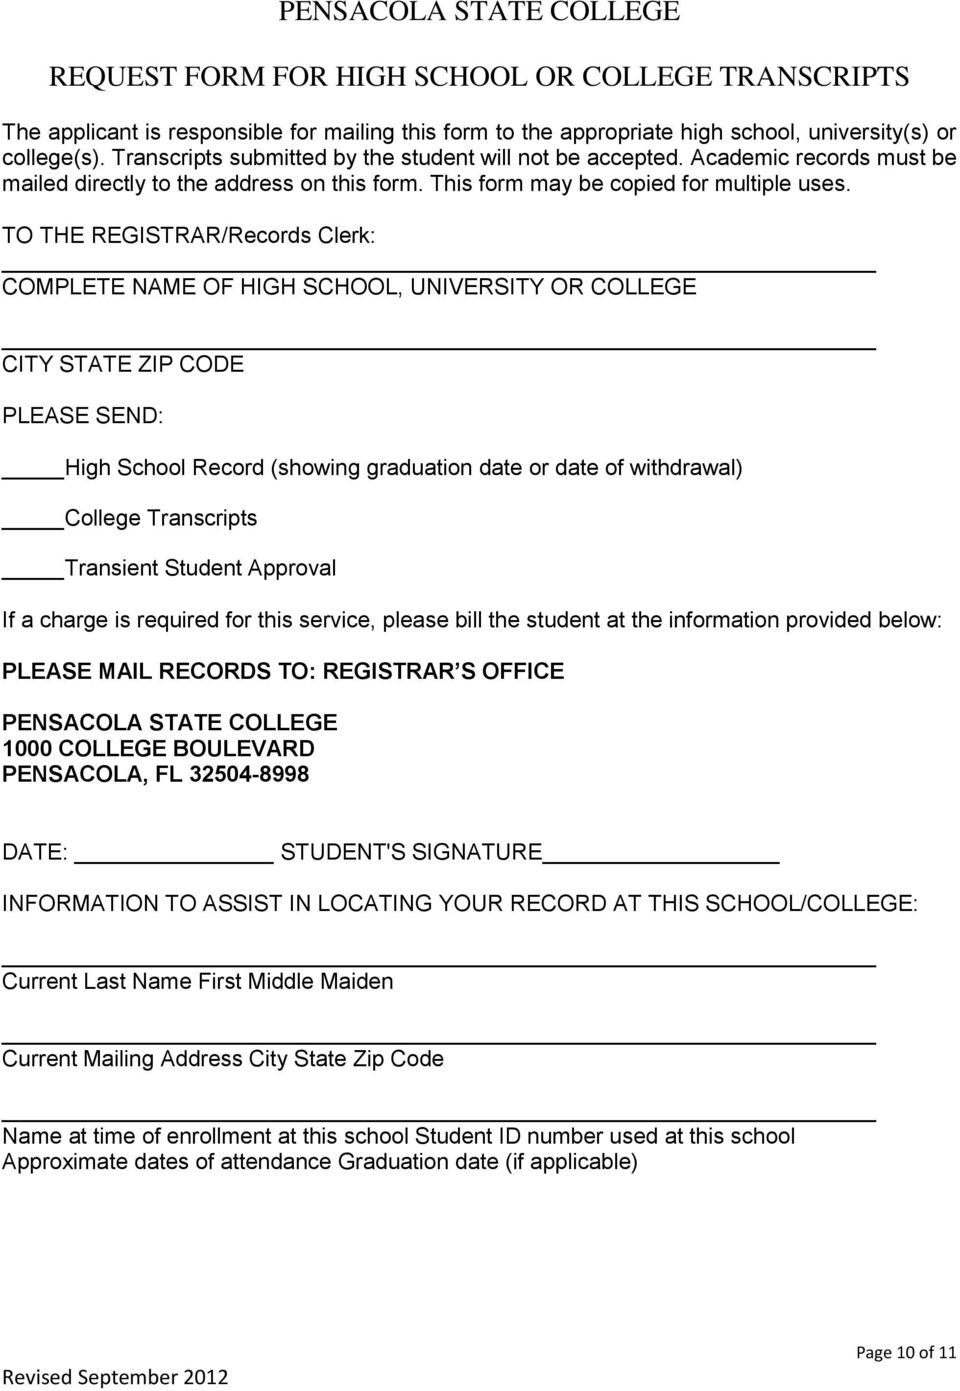 TO THE REGISTRAR/Records Clerk: COMPLETE NAME OF HIGH SCHOOL, UNIVERSITY OR COLLEGE CITY STATE ZIP CODE PLEASE SEND: High School Record (showing graduation date or date of withdrawal) College